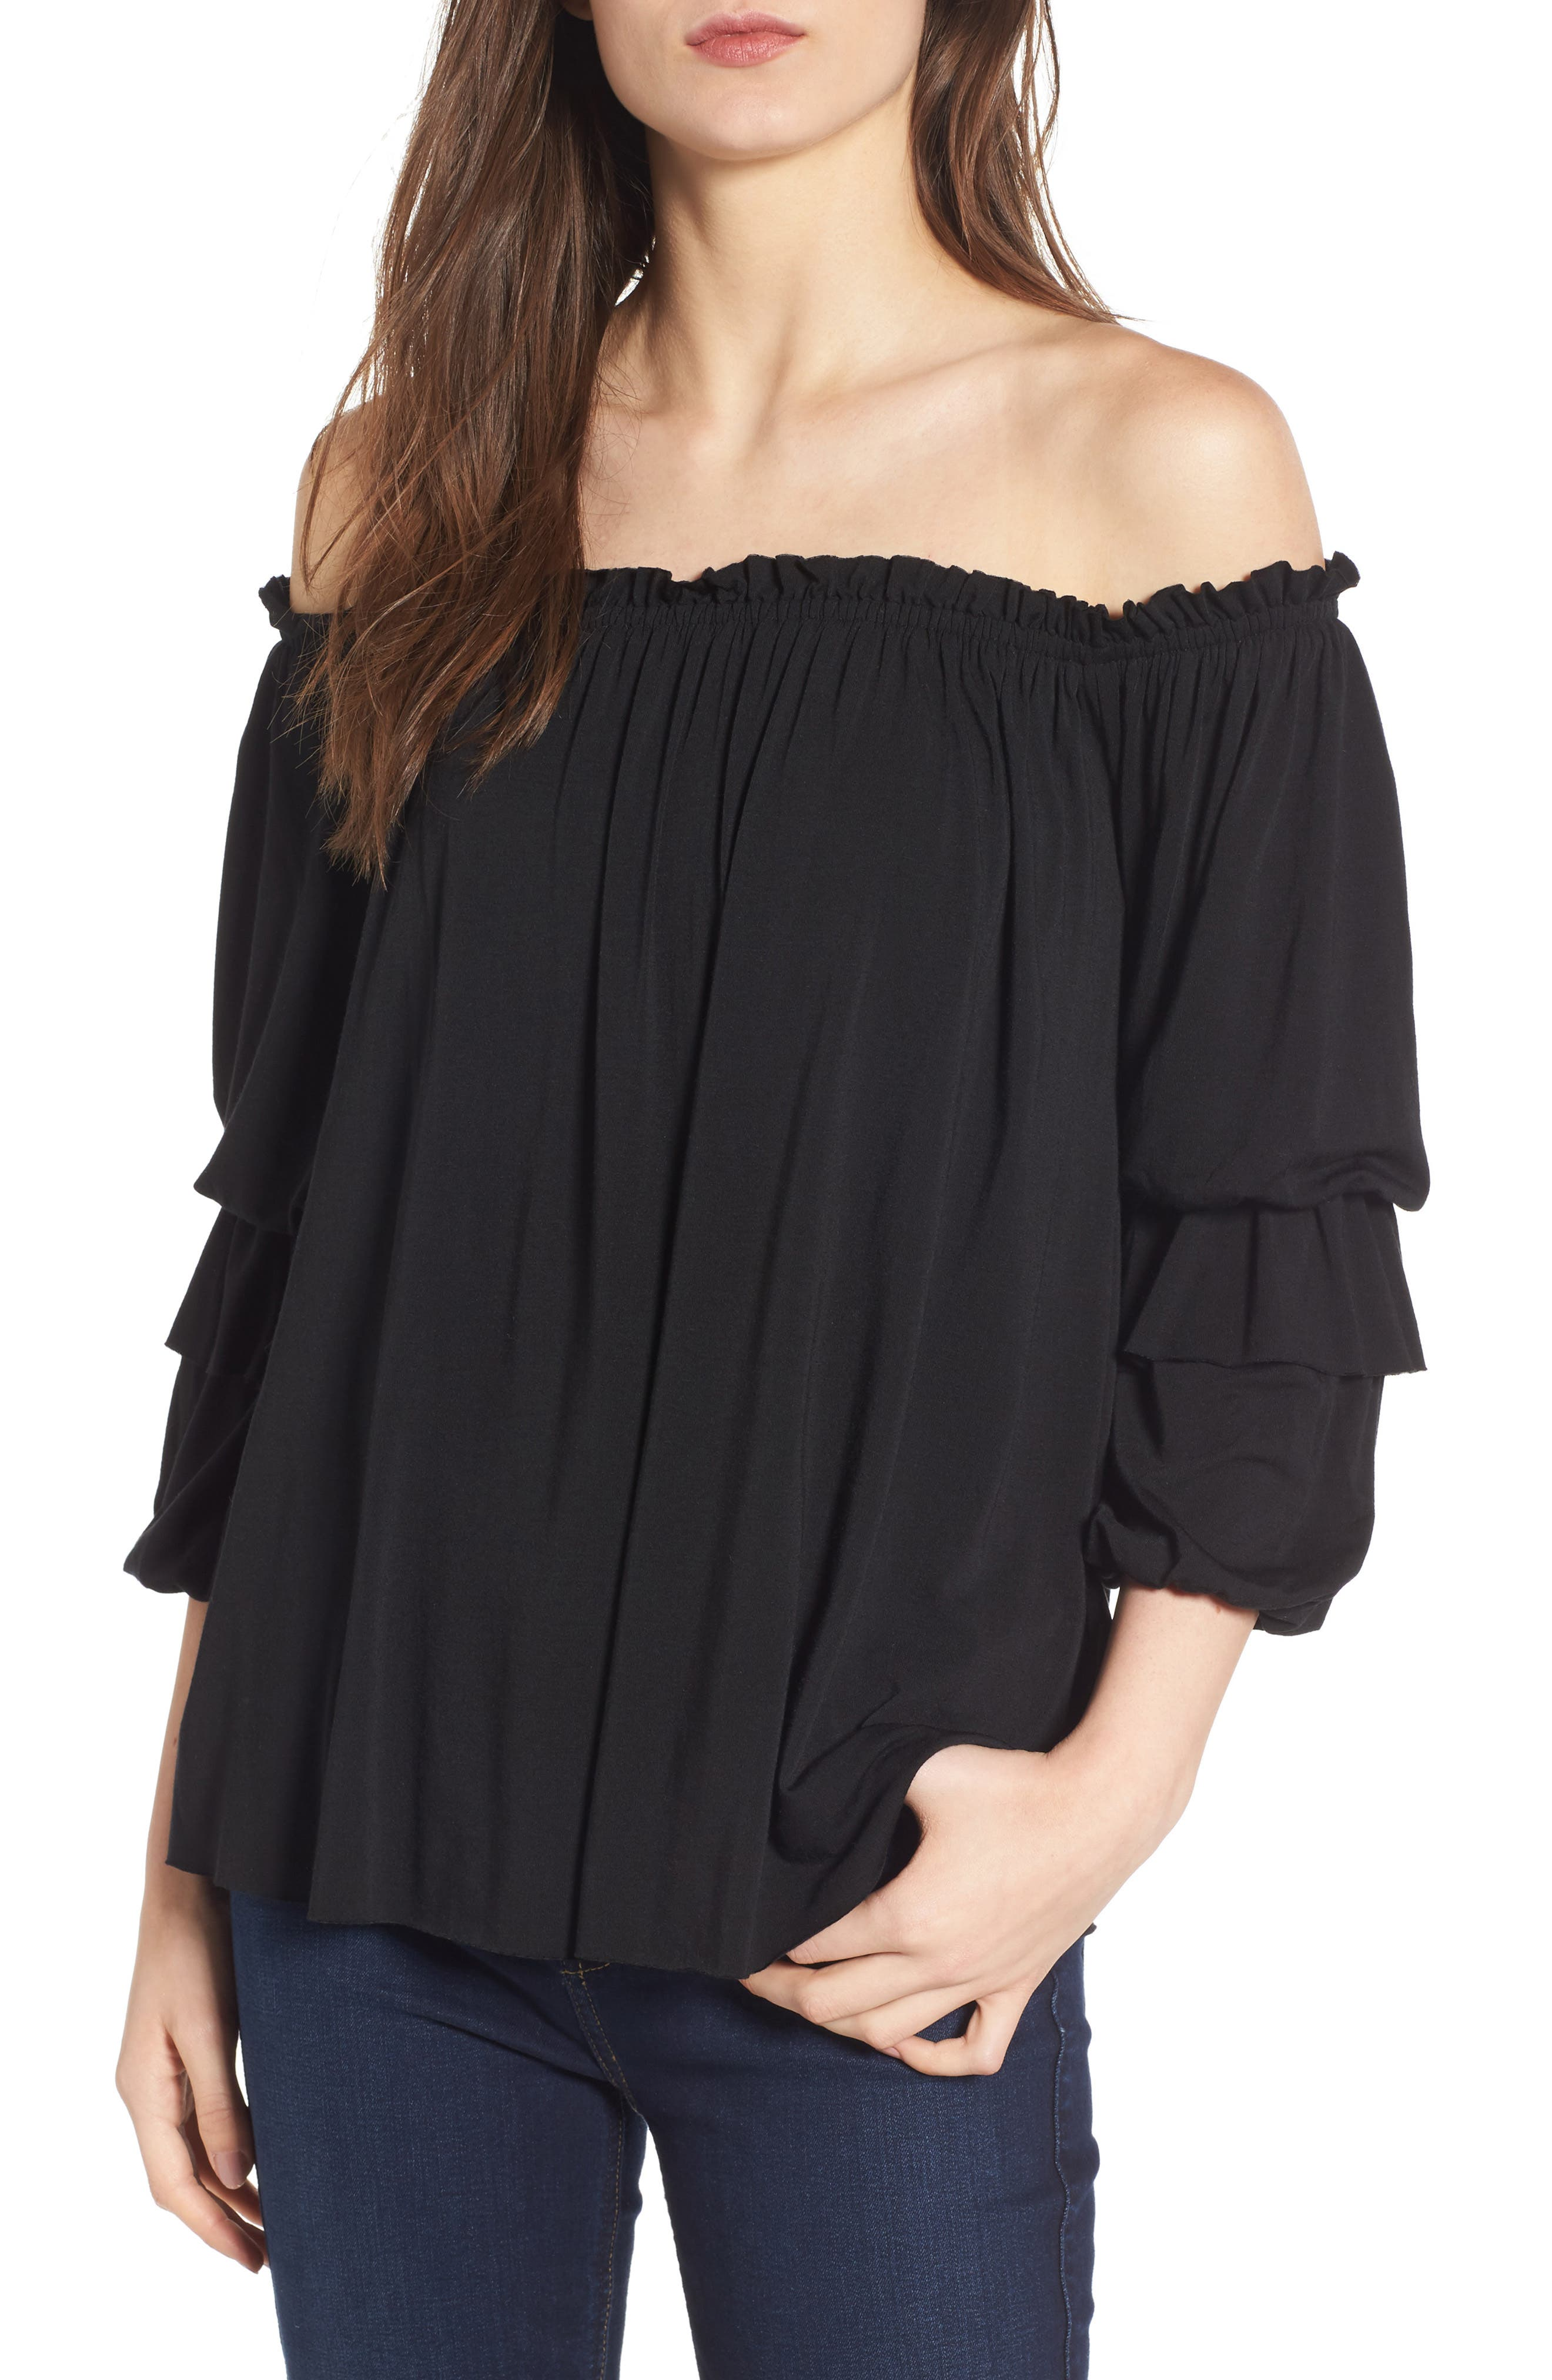 Bailey 44 Regalia Off the Shoulder Top